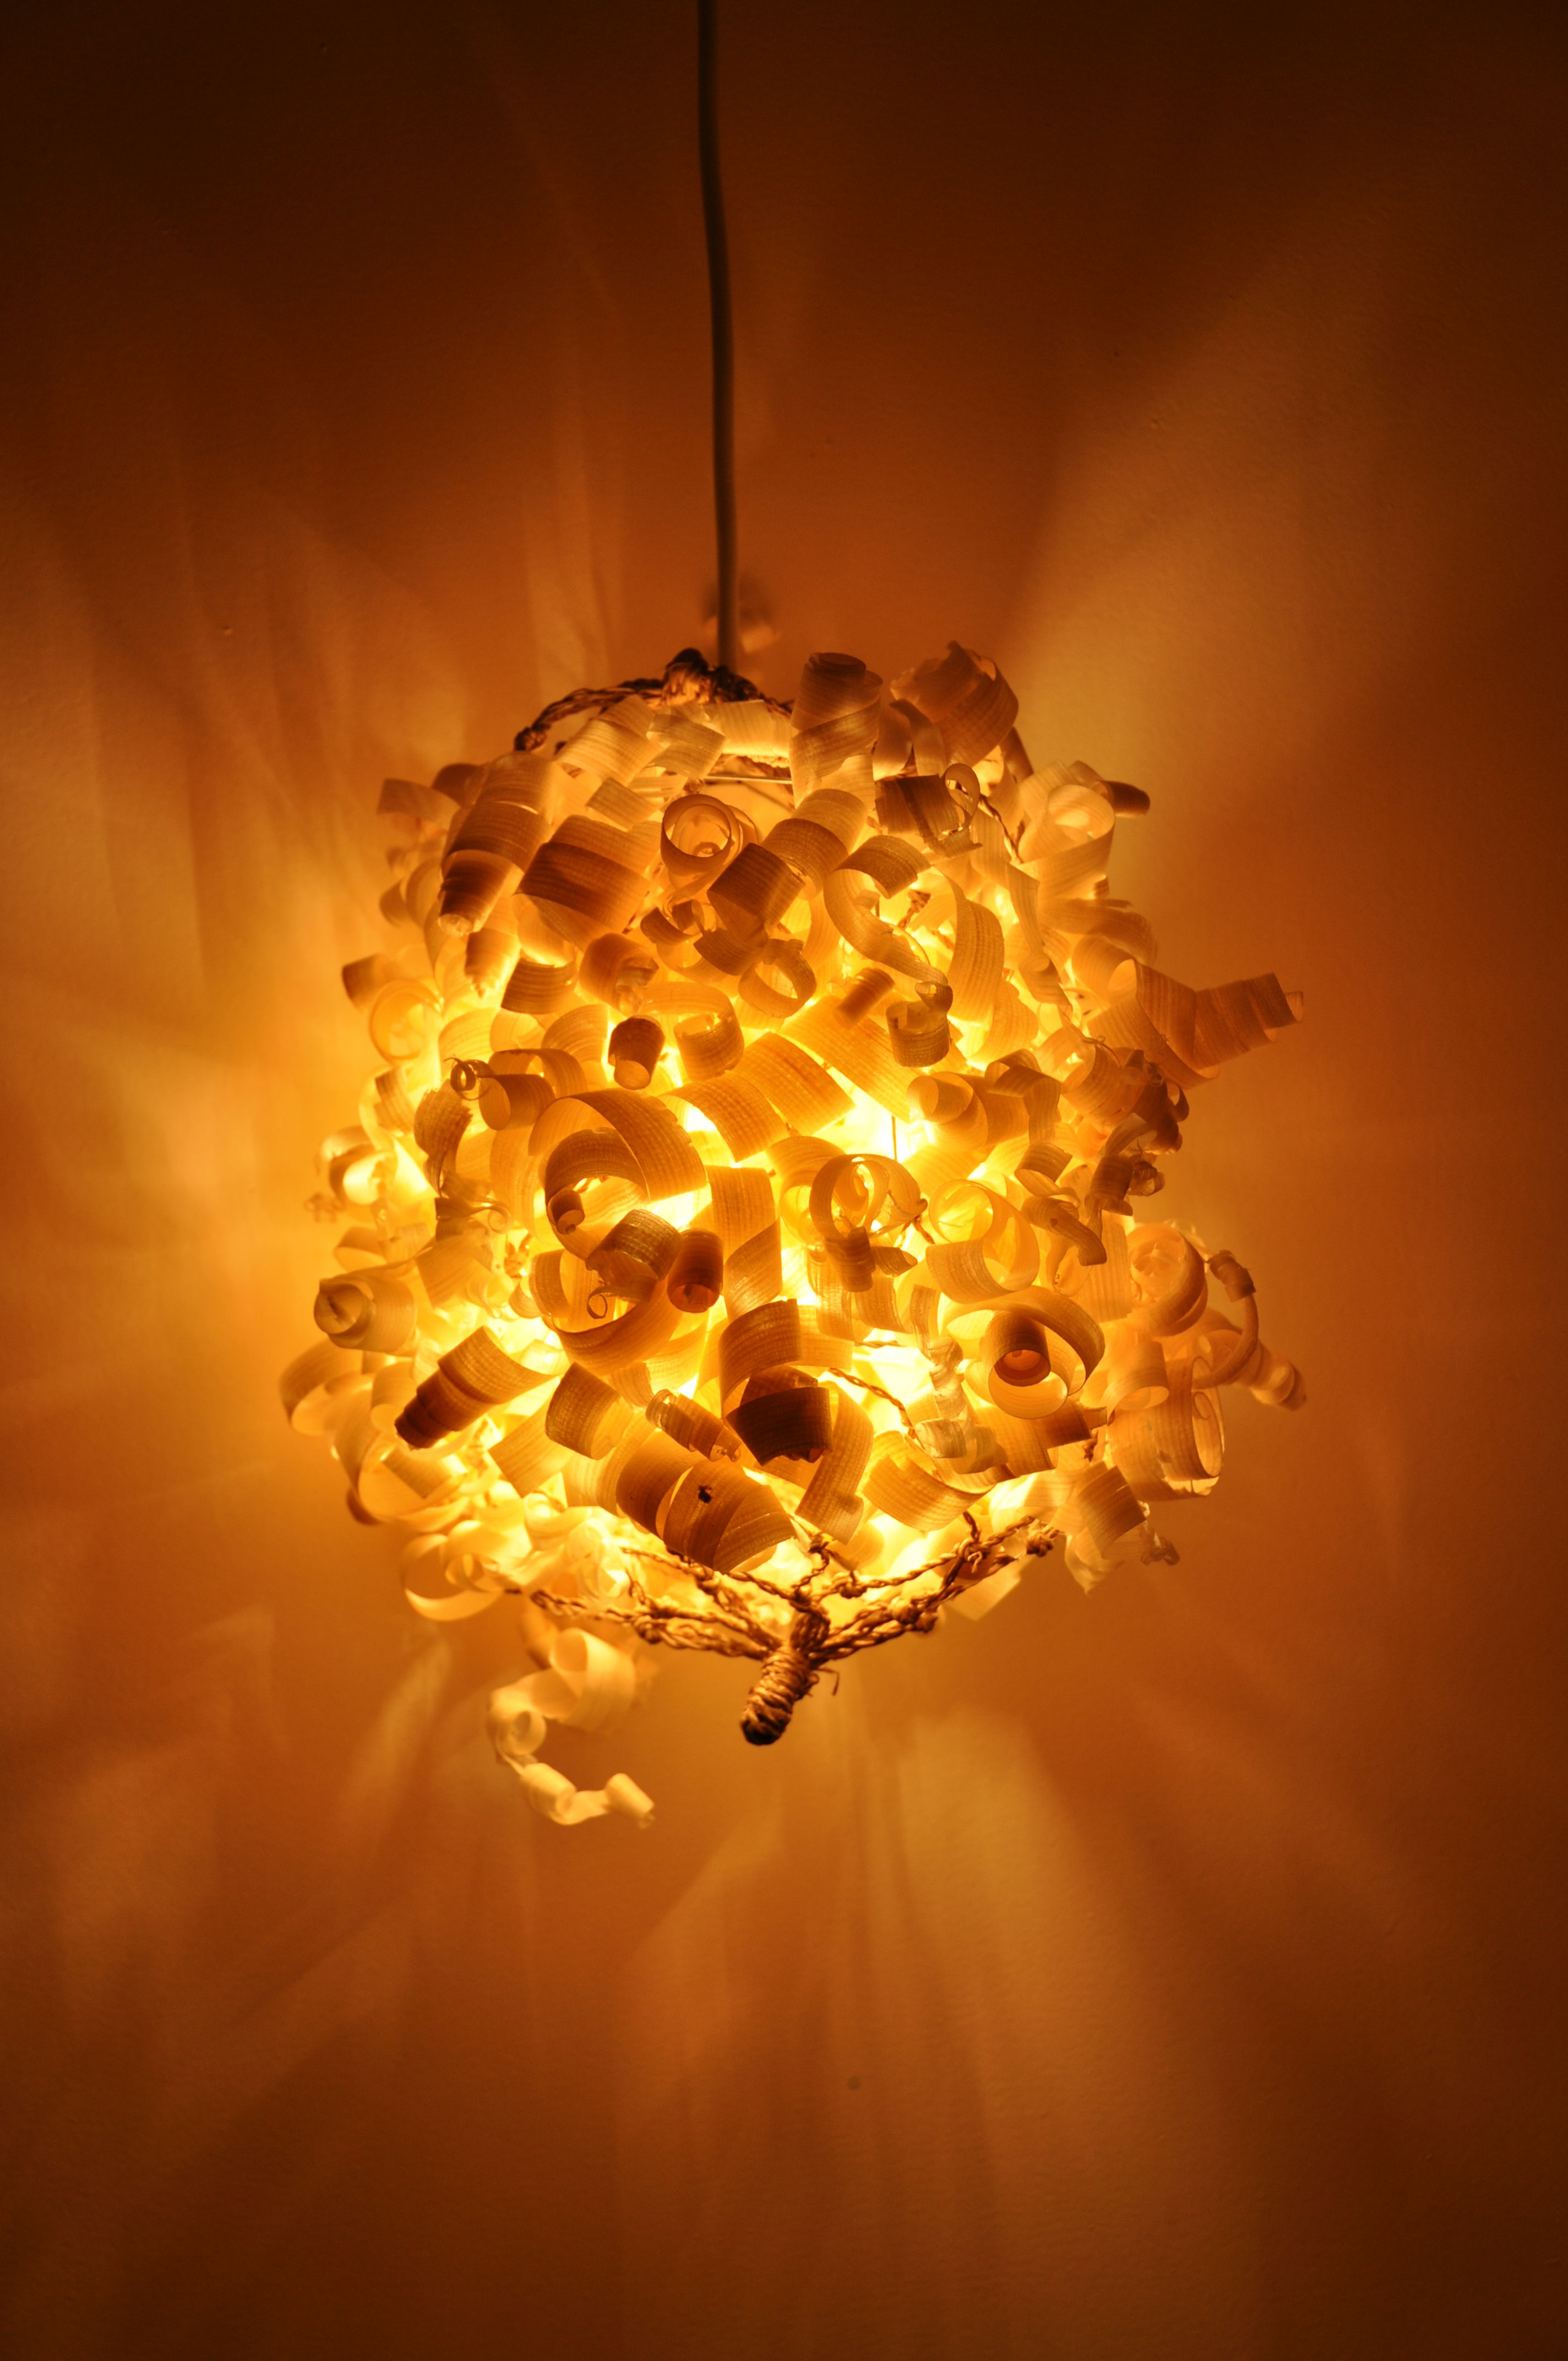 Delightful Homemade Lamp, Wood Shavings On Grid.